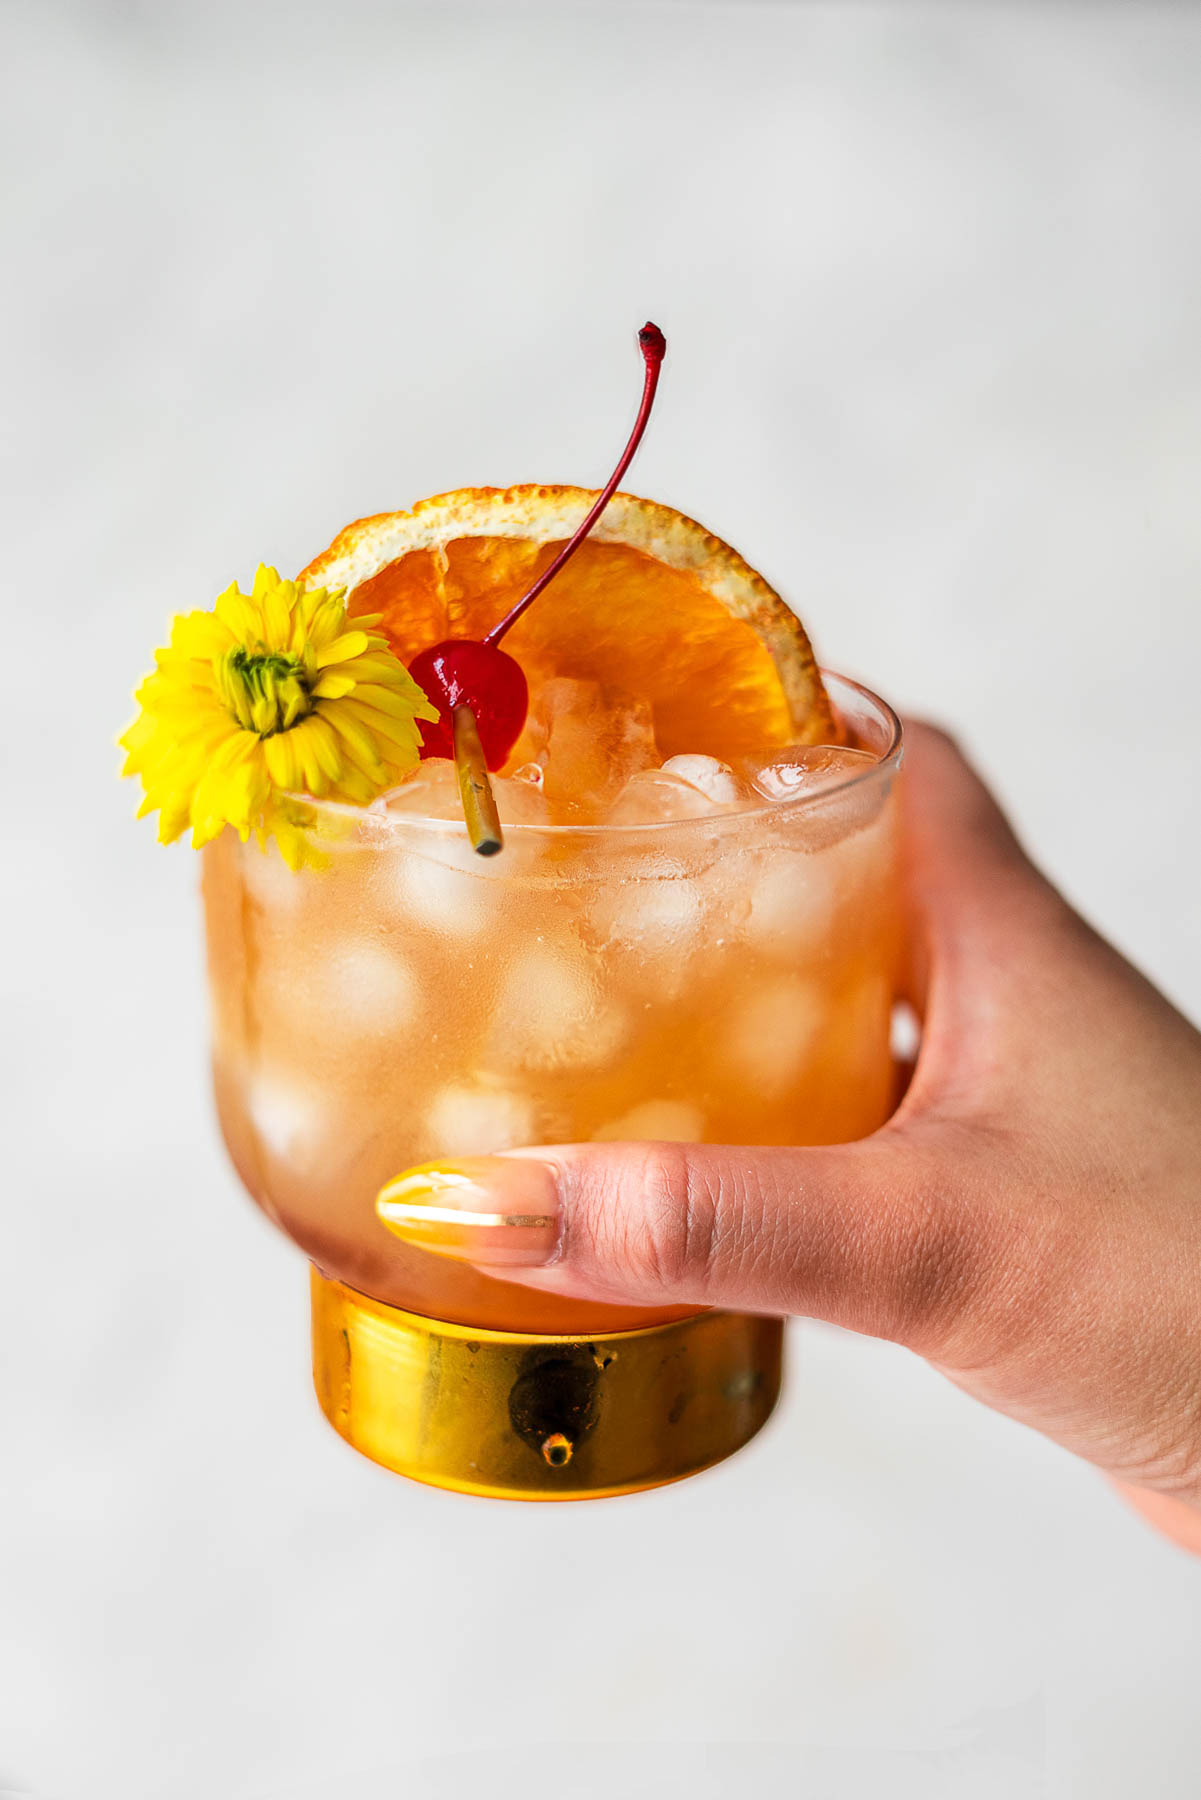 Manicured hand holding up a cup with amaretto sour with a gold bottom and cherry, flour, and orange slice as garnish